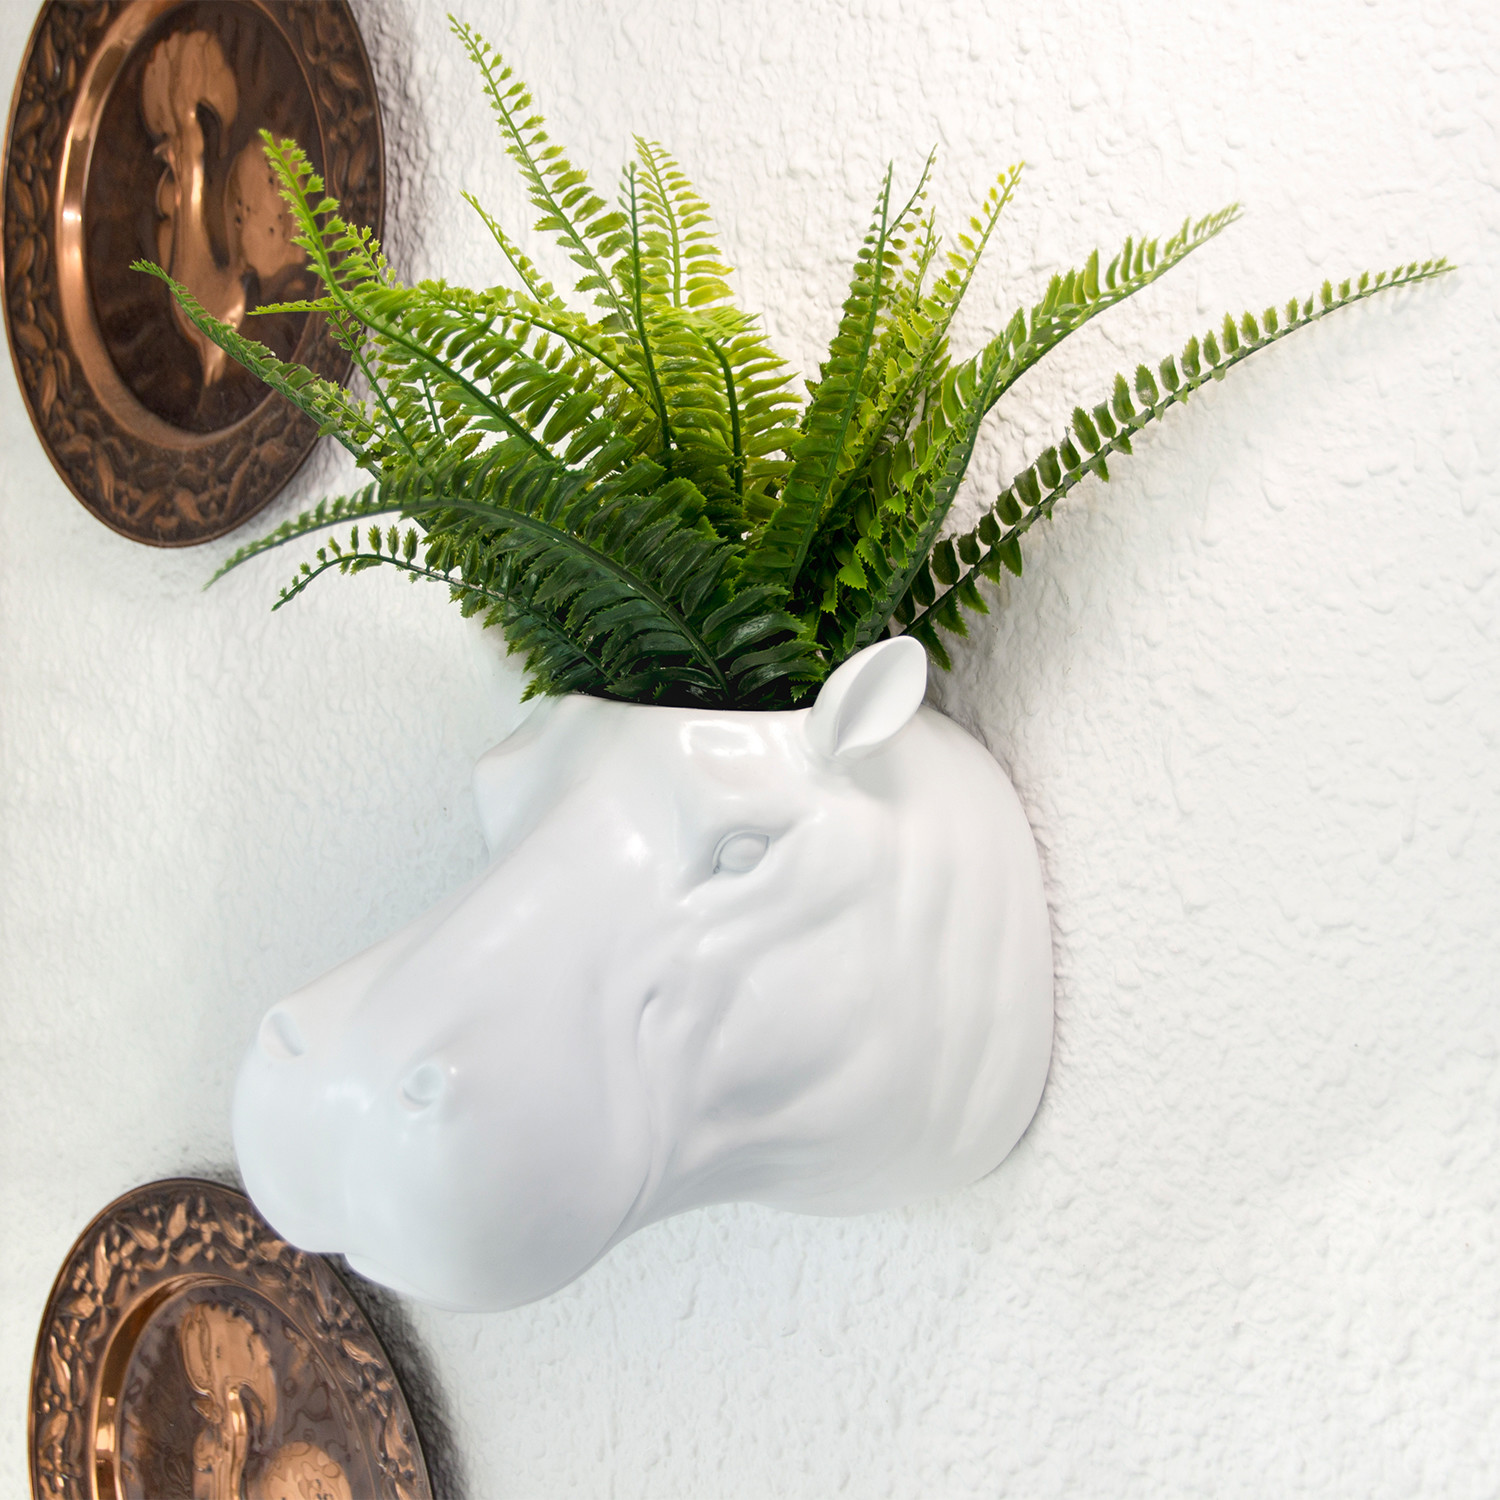 White Flower Pots For Sale 2 In 1 White Hippo Flower Pot Wall Hanging Plant Pot